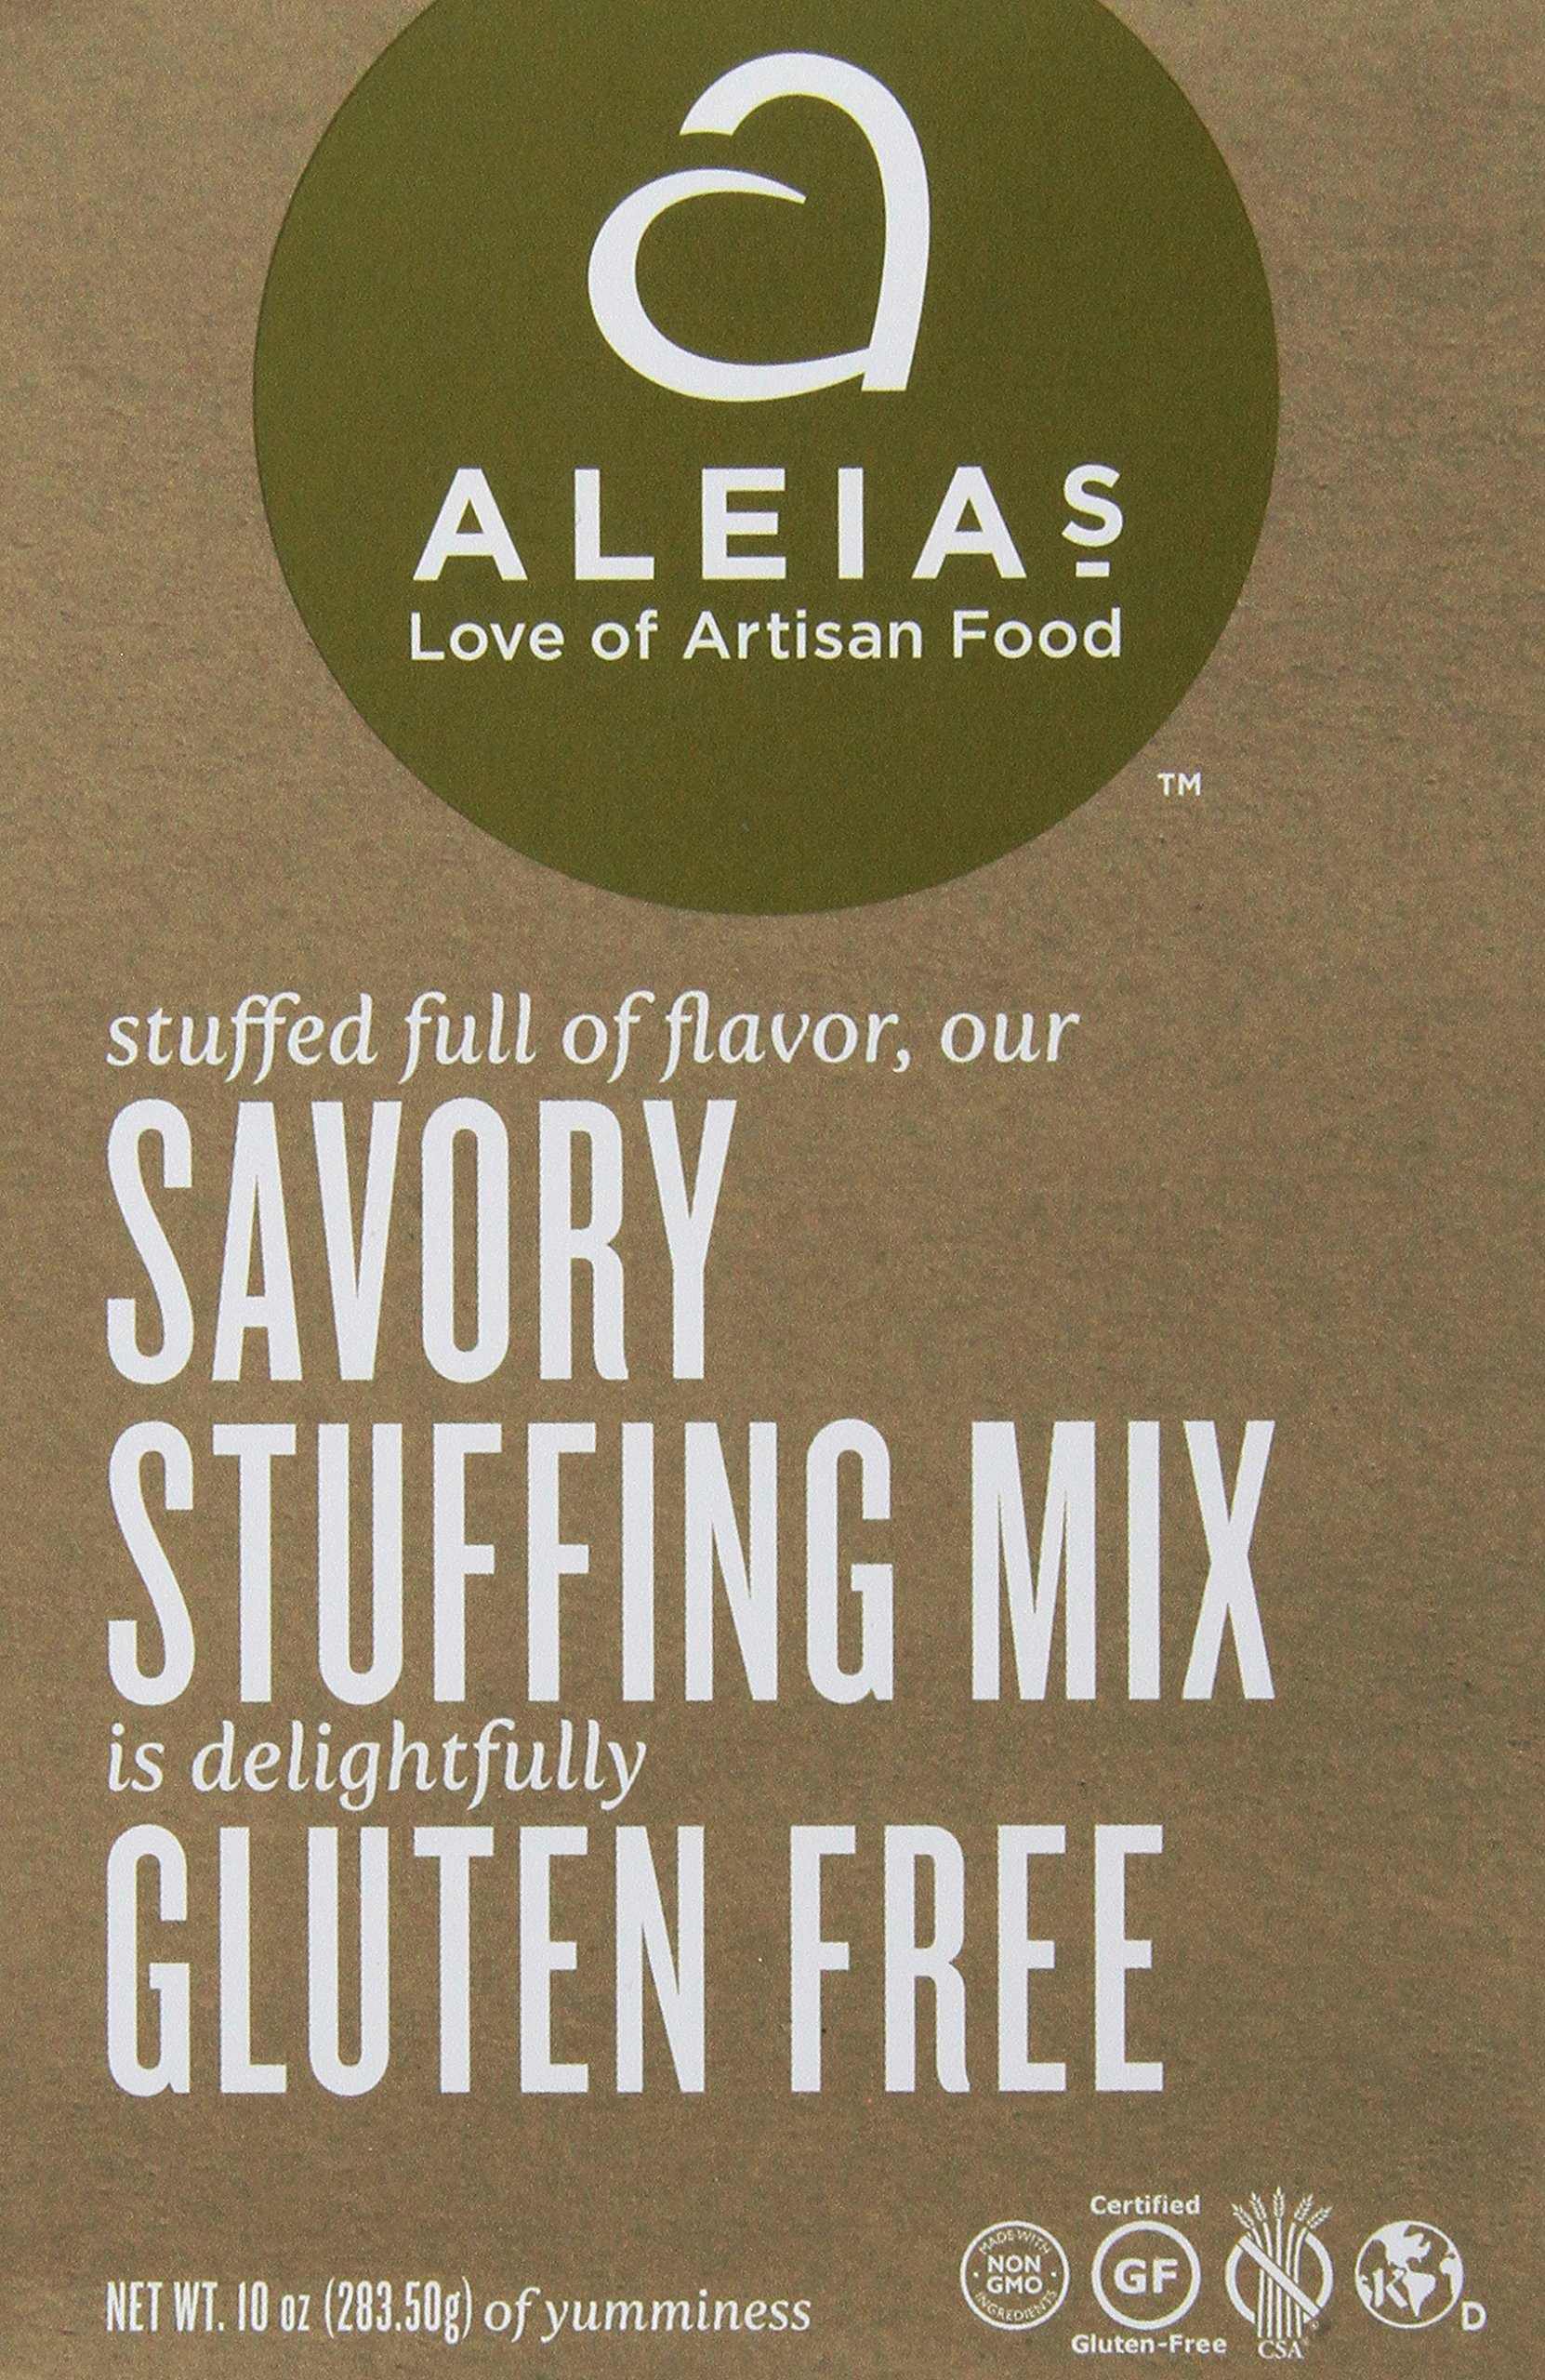 Stuffing Mix Savory Gluten-Free (6 Bags) 9 Ounces by Aleias